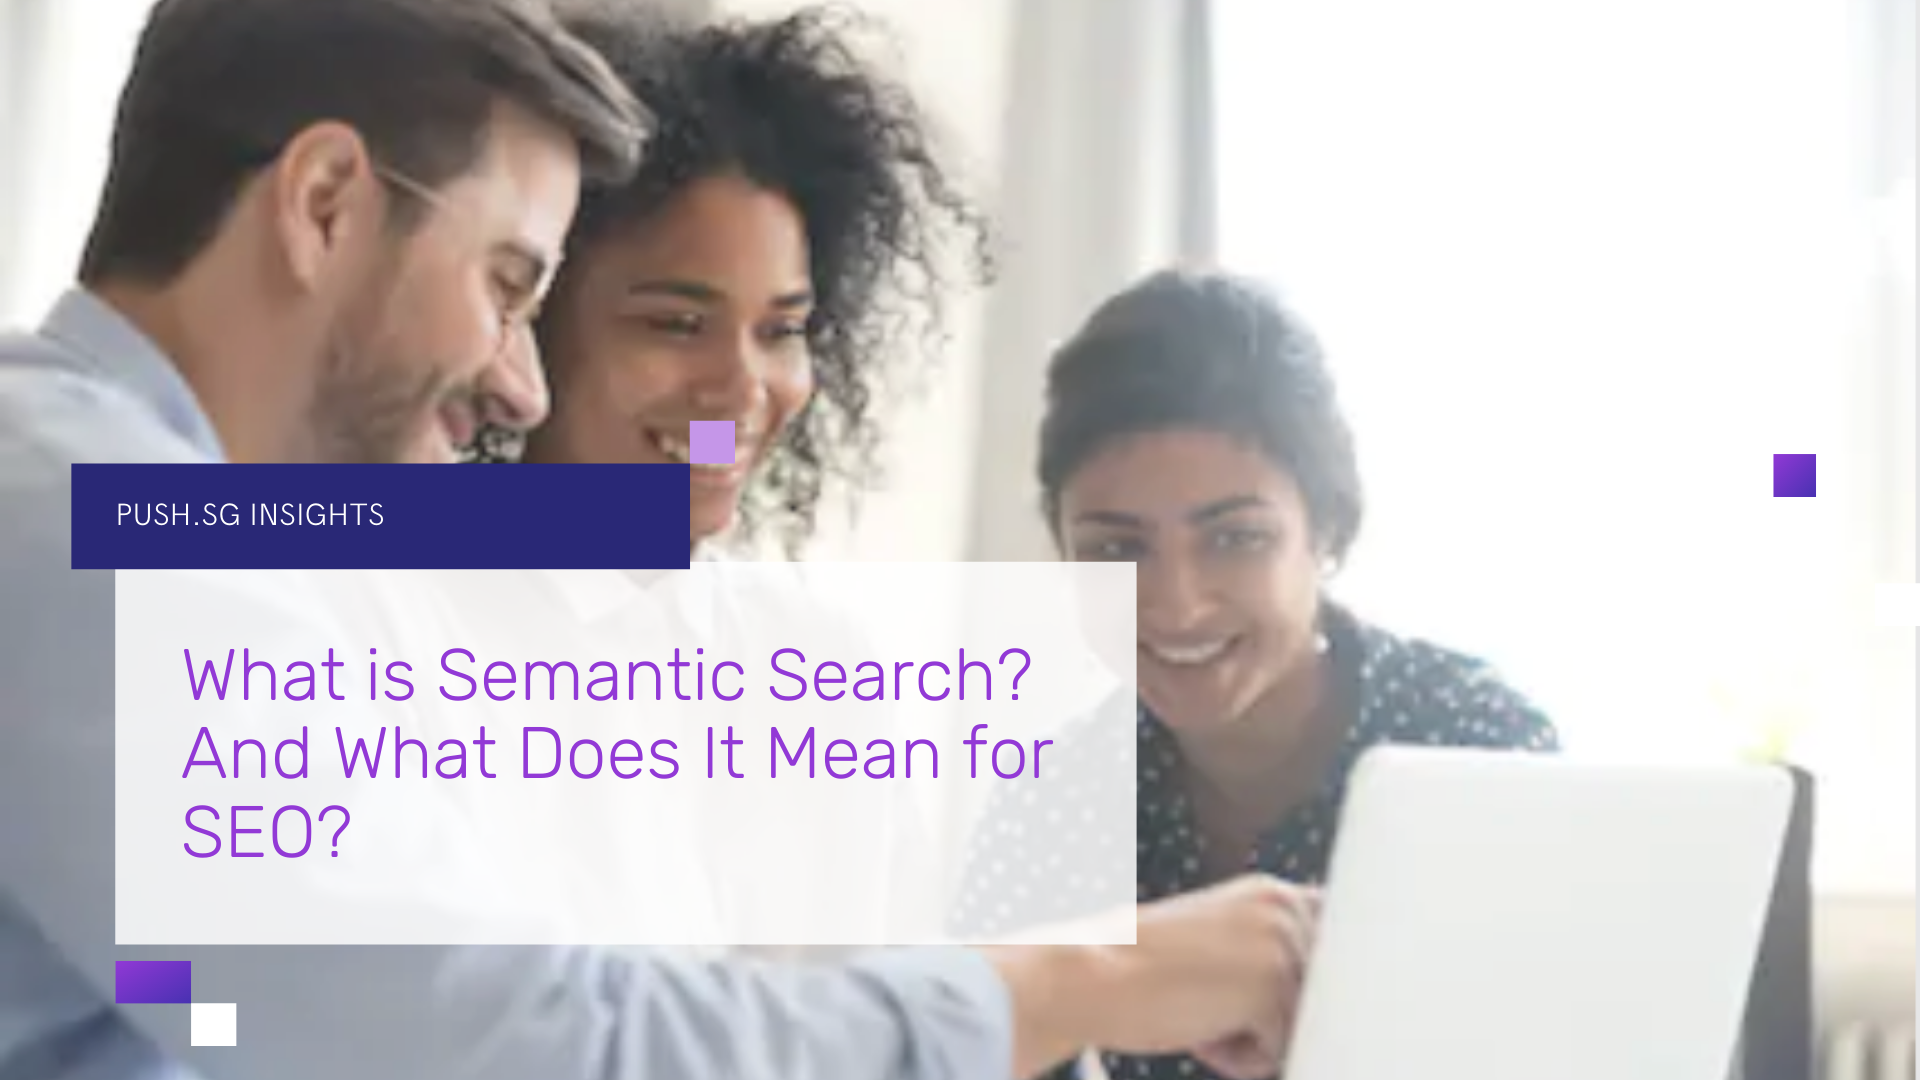 What is Semantic Search? And What Does it Mean for SEO?